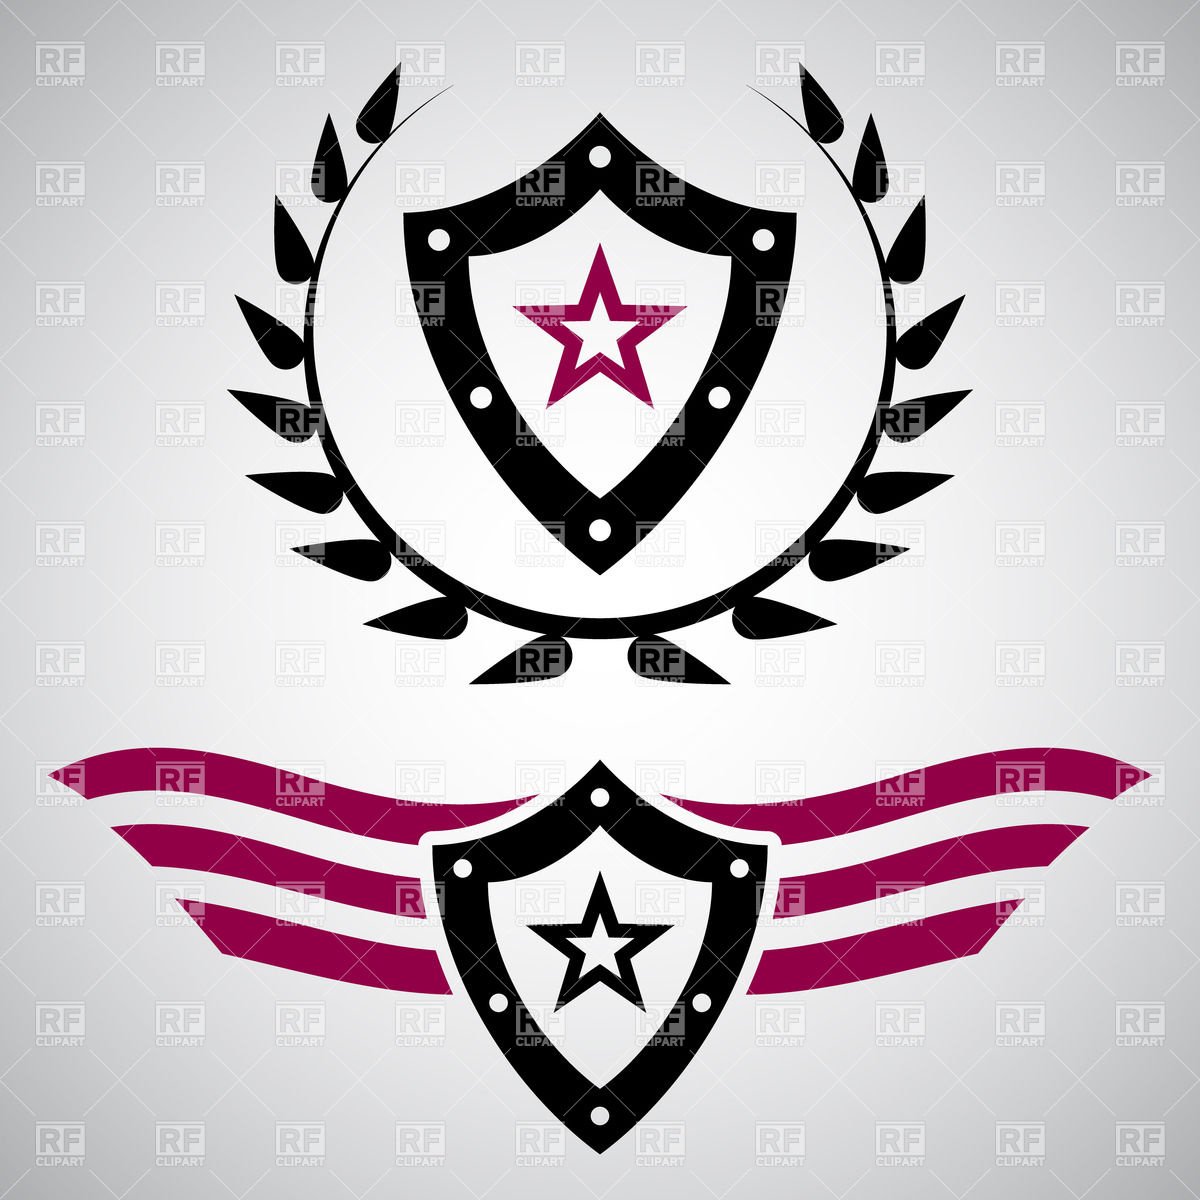 Military style emblems with shields Vector Image #28386.